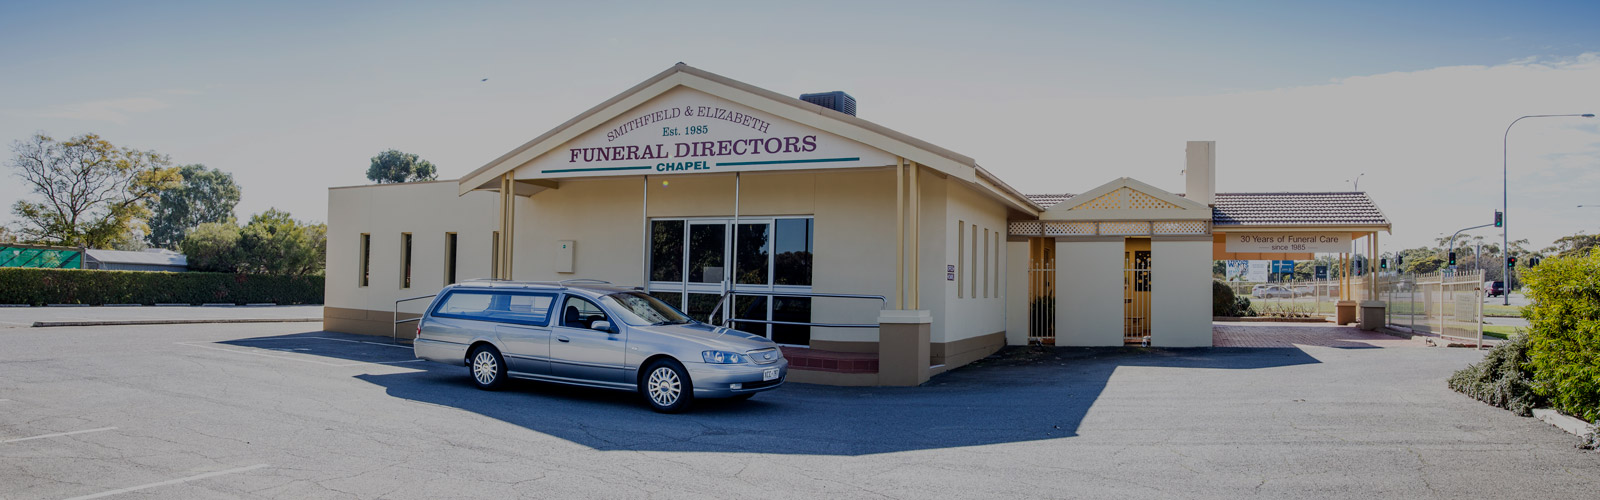 smithfield elizabeth funerals funeral home arranging undertaker planning gawler plains downs north south east west coffin taylor and forgie blakeview craigmore